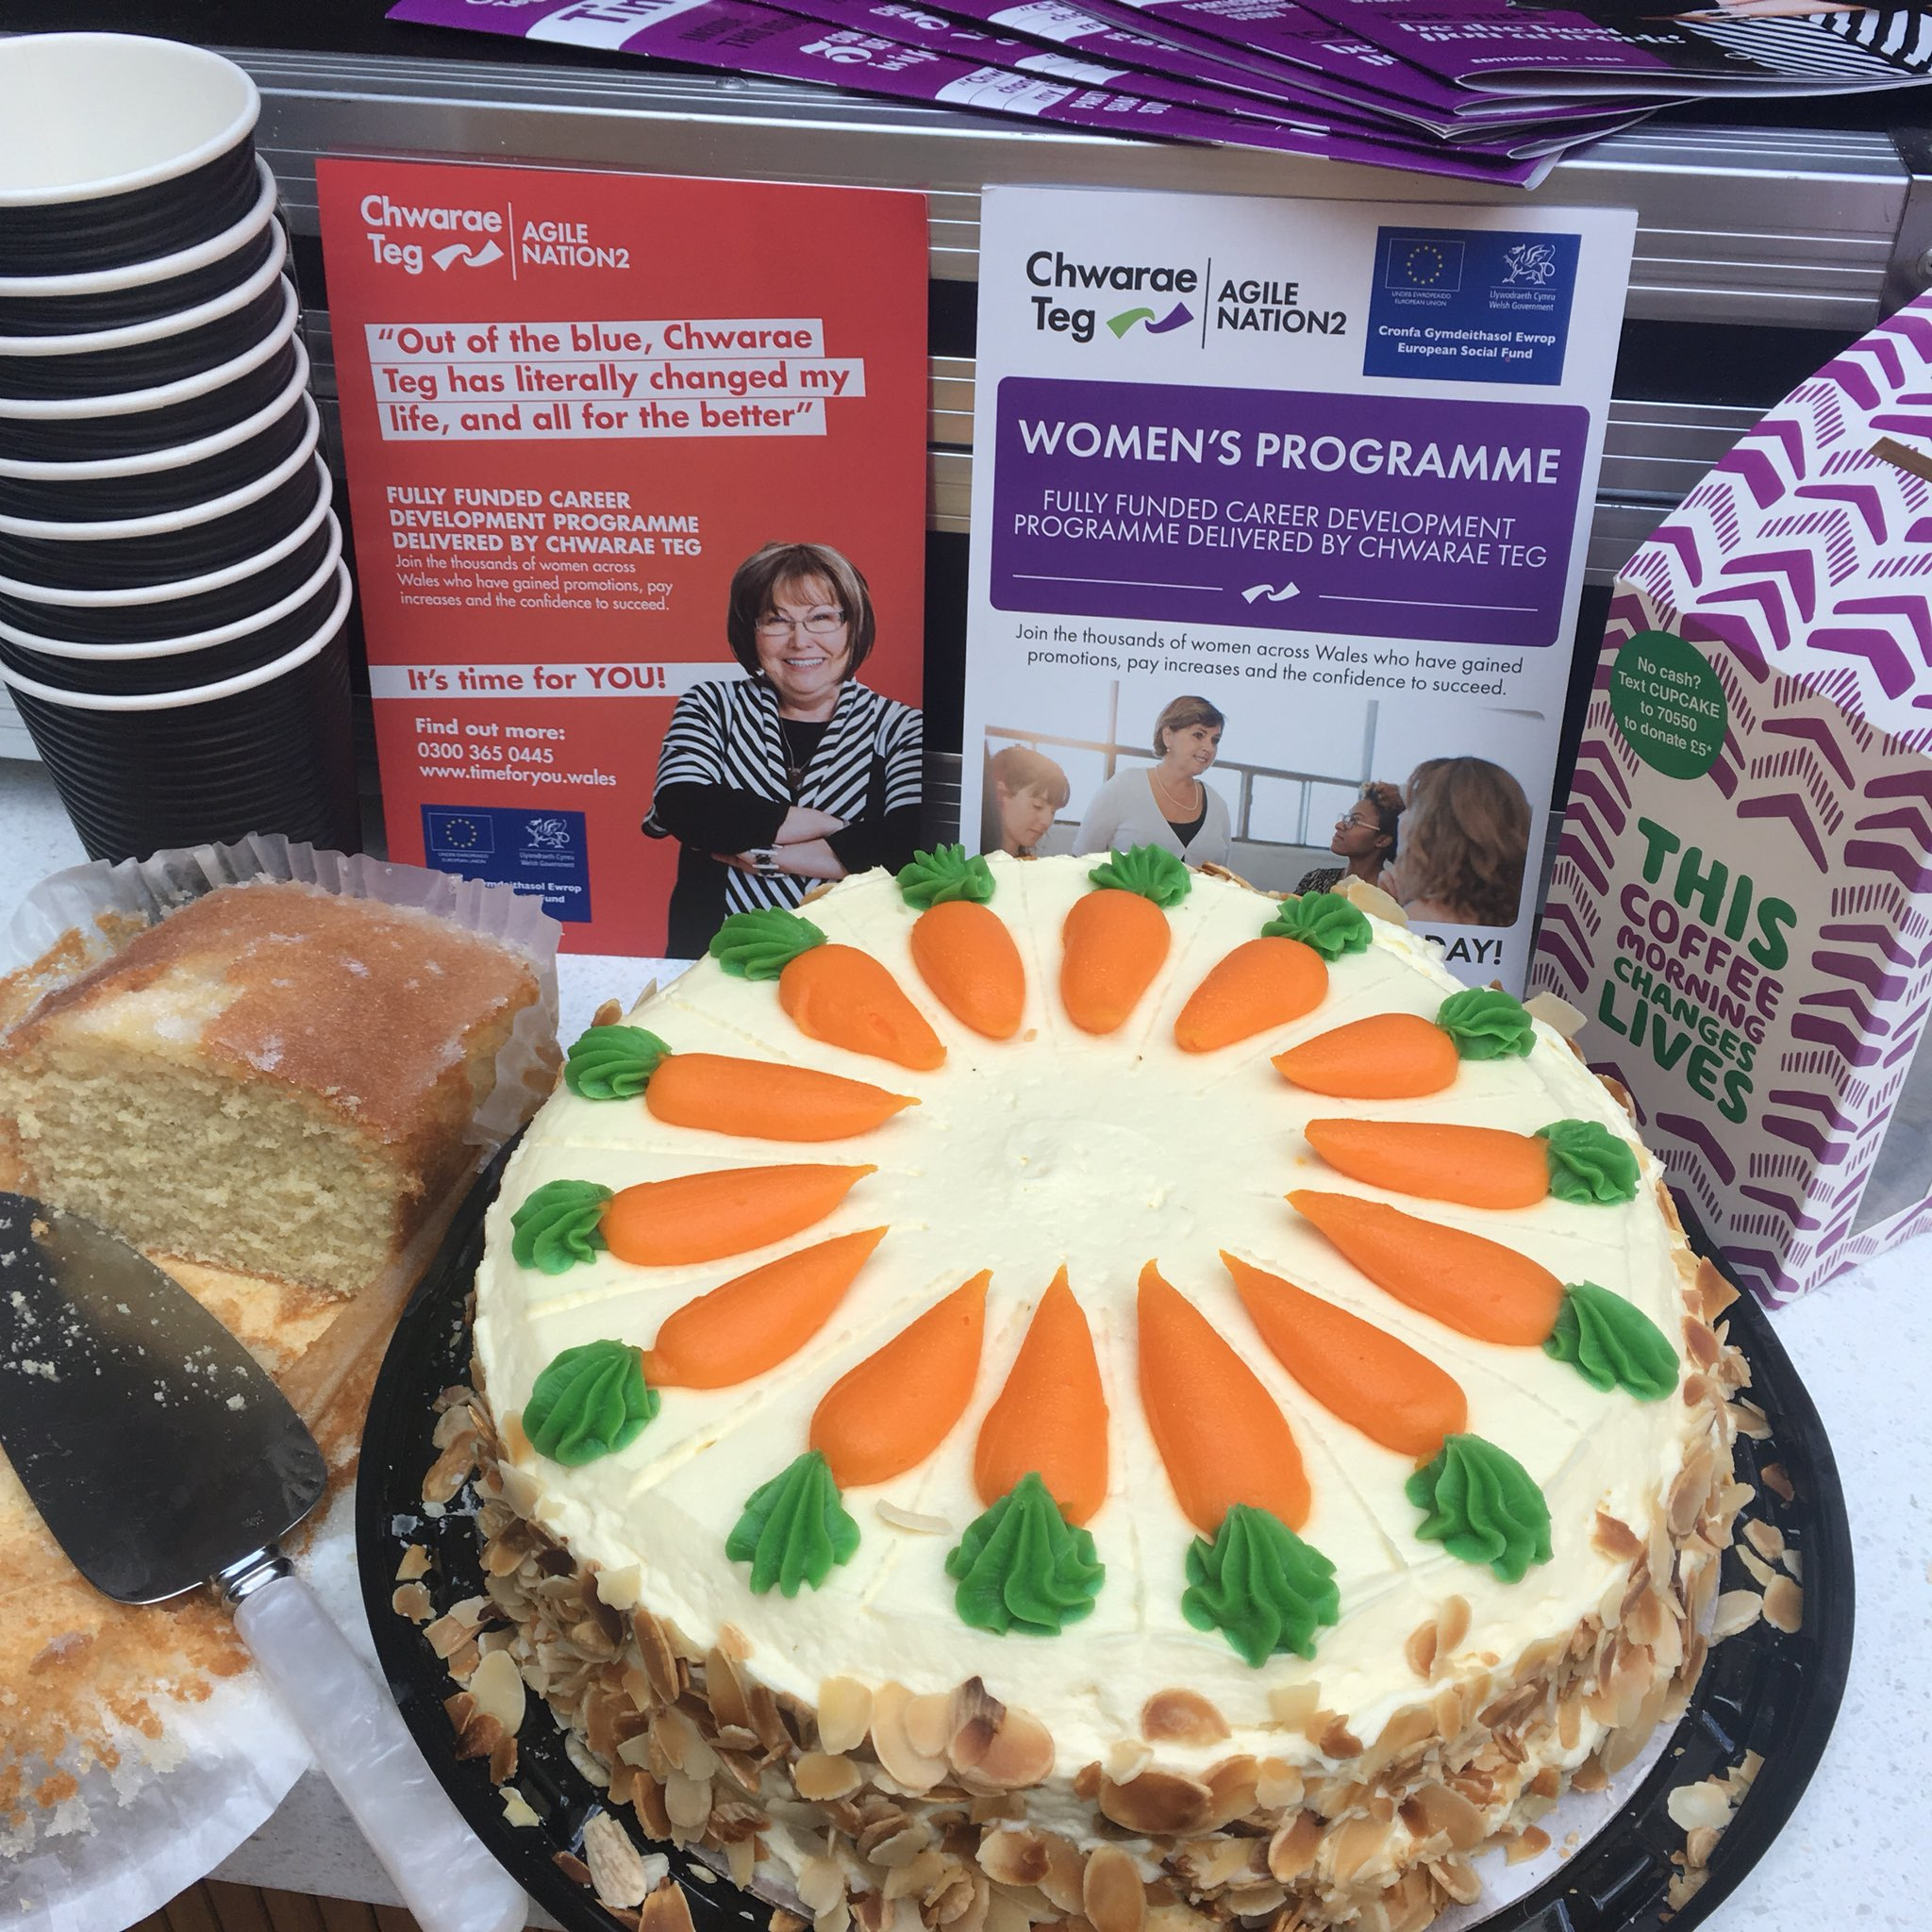 Chwarae Teg On Twitter Anyone For Carrot Cake Join Us